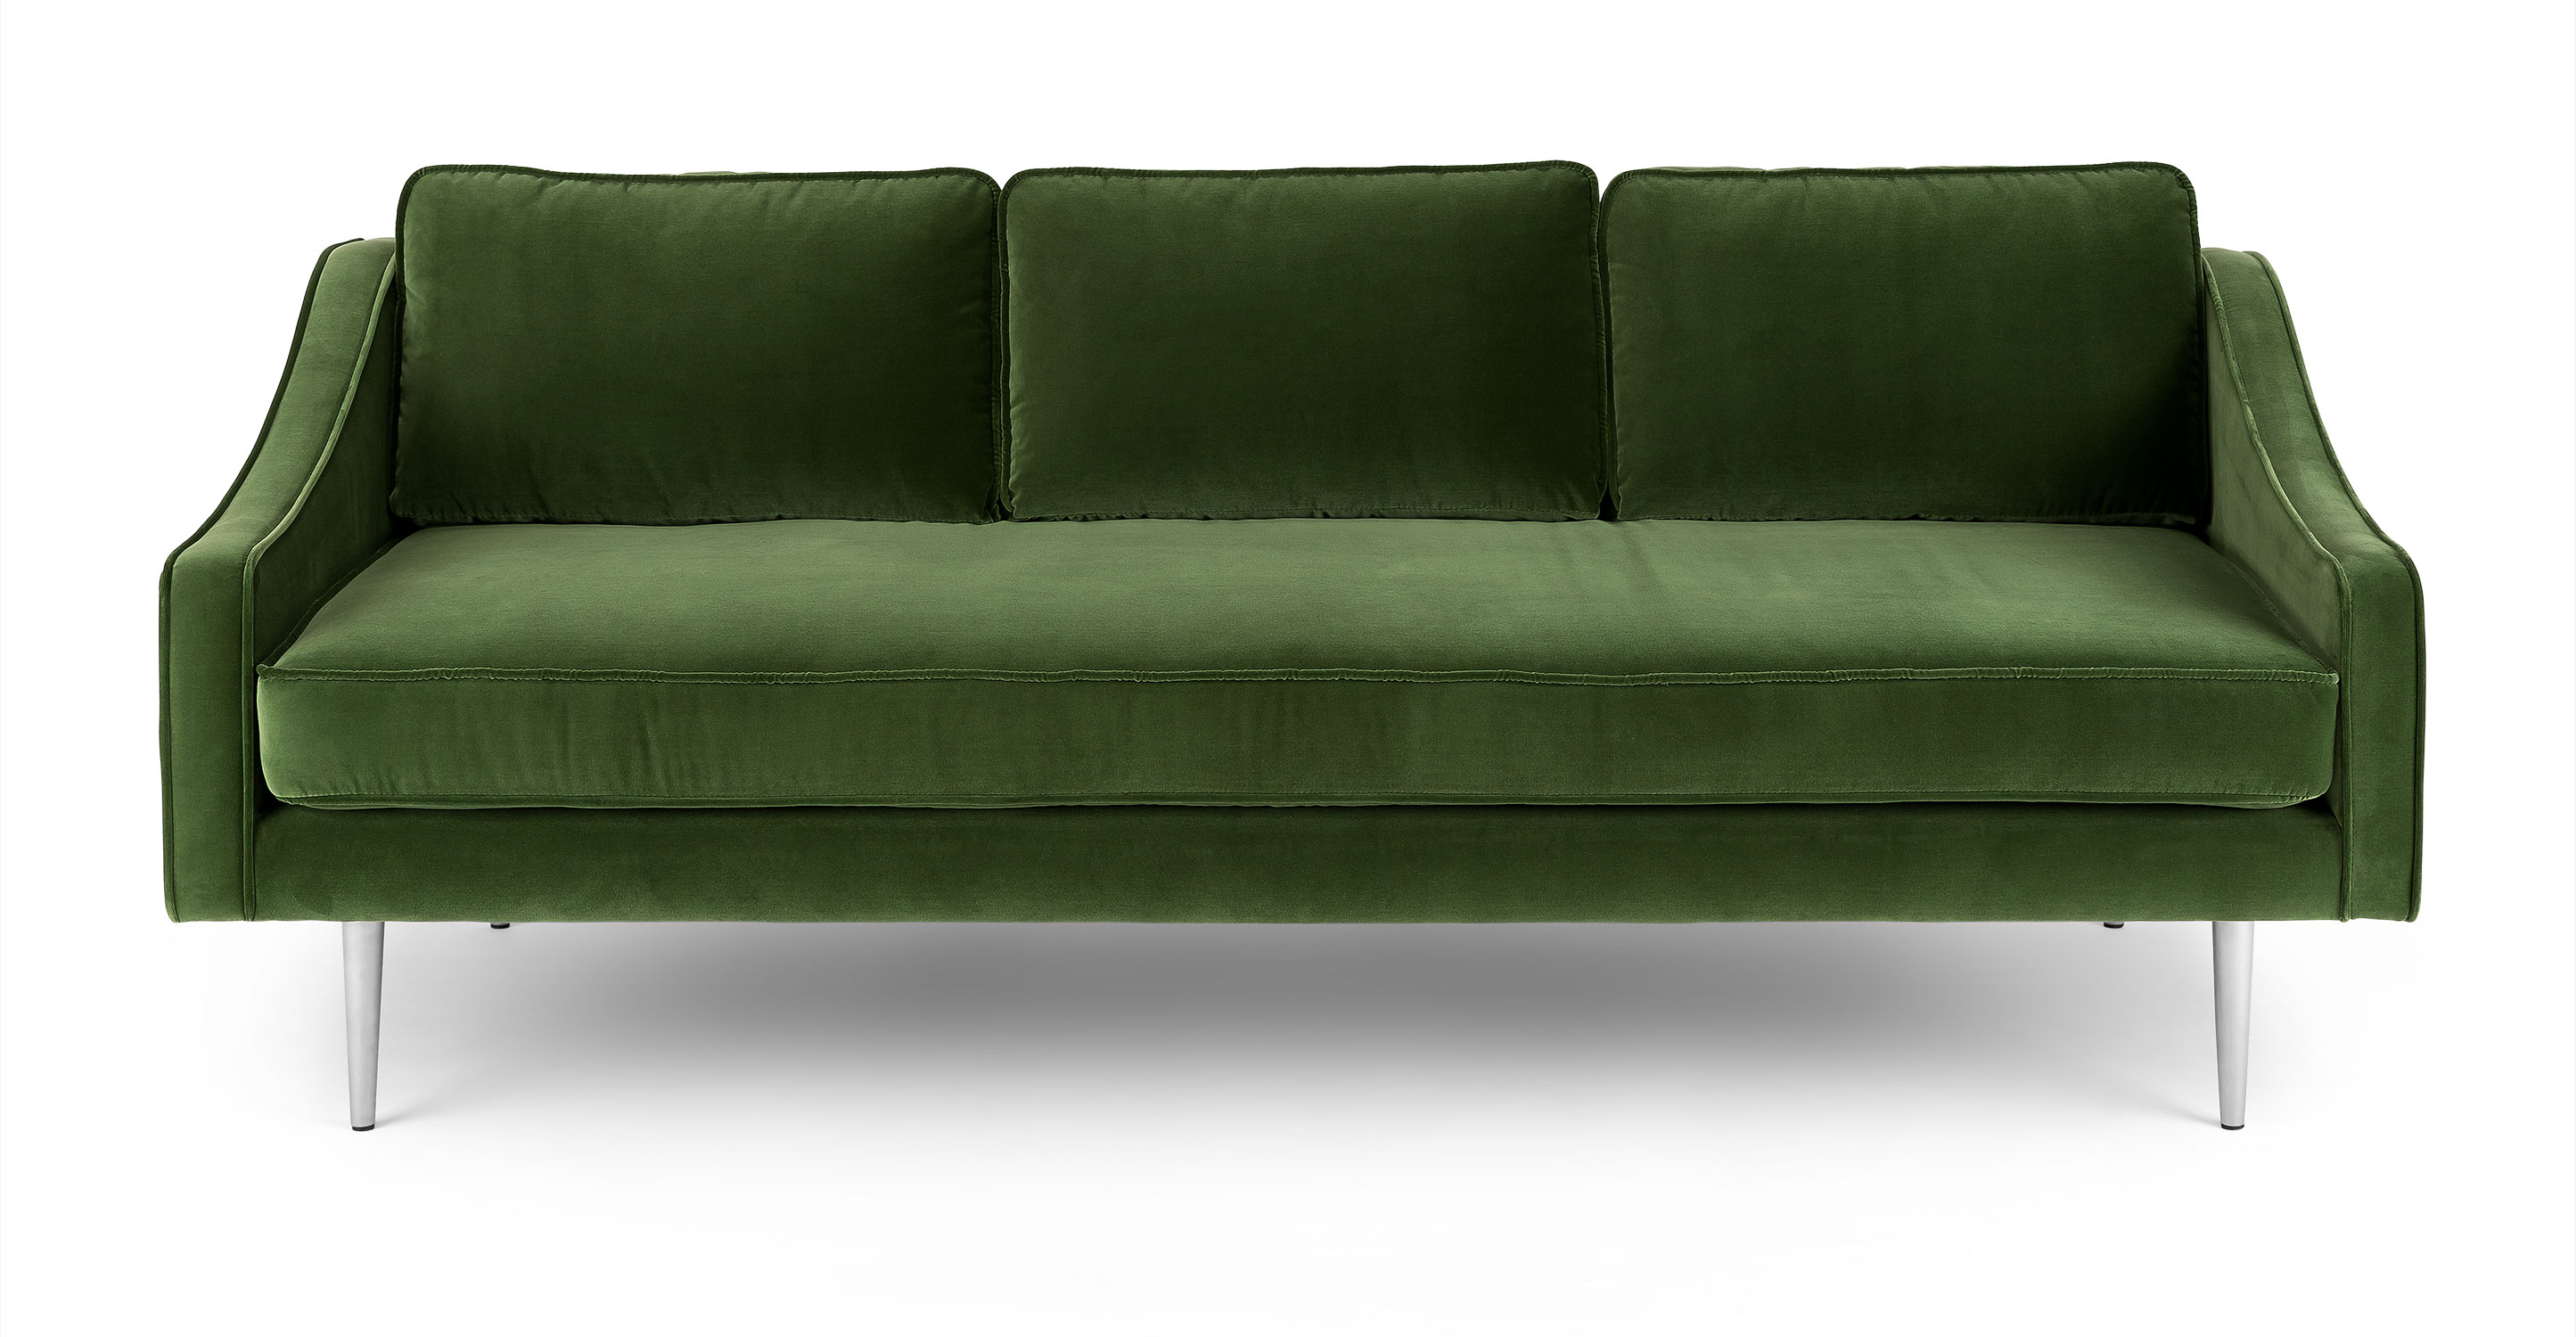 Green Settee Mirage Grass Green Sofa Sofas Article Modern Mid